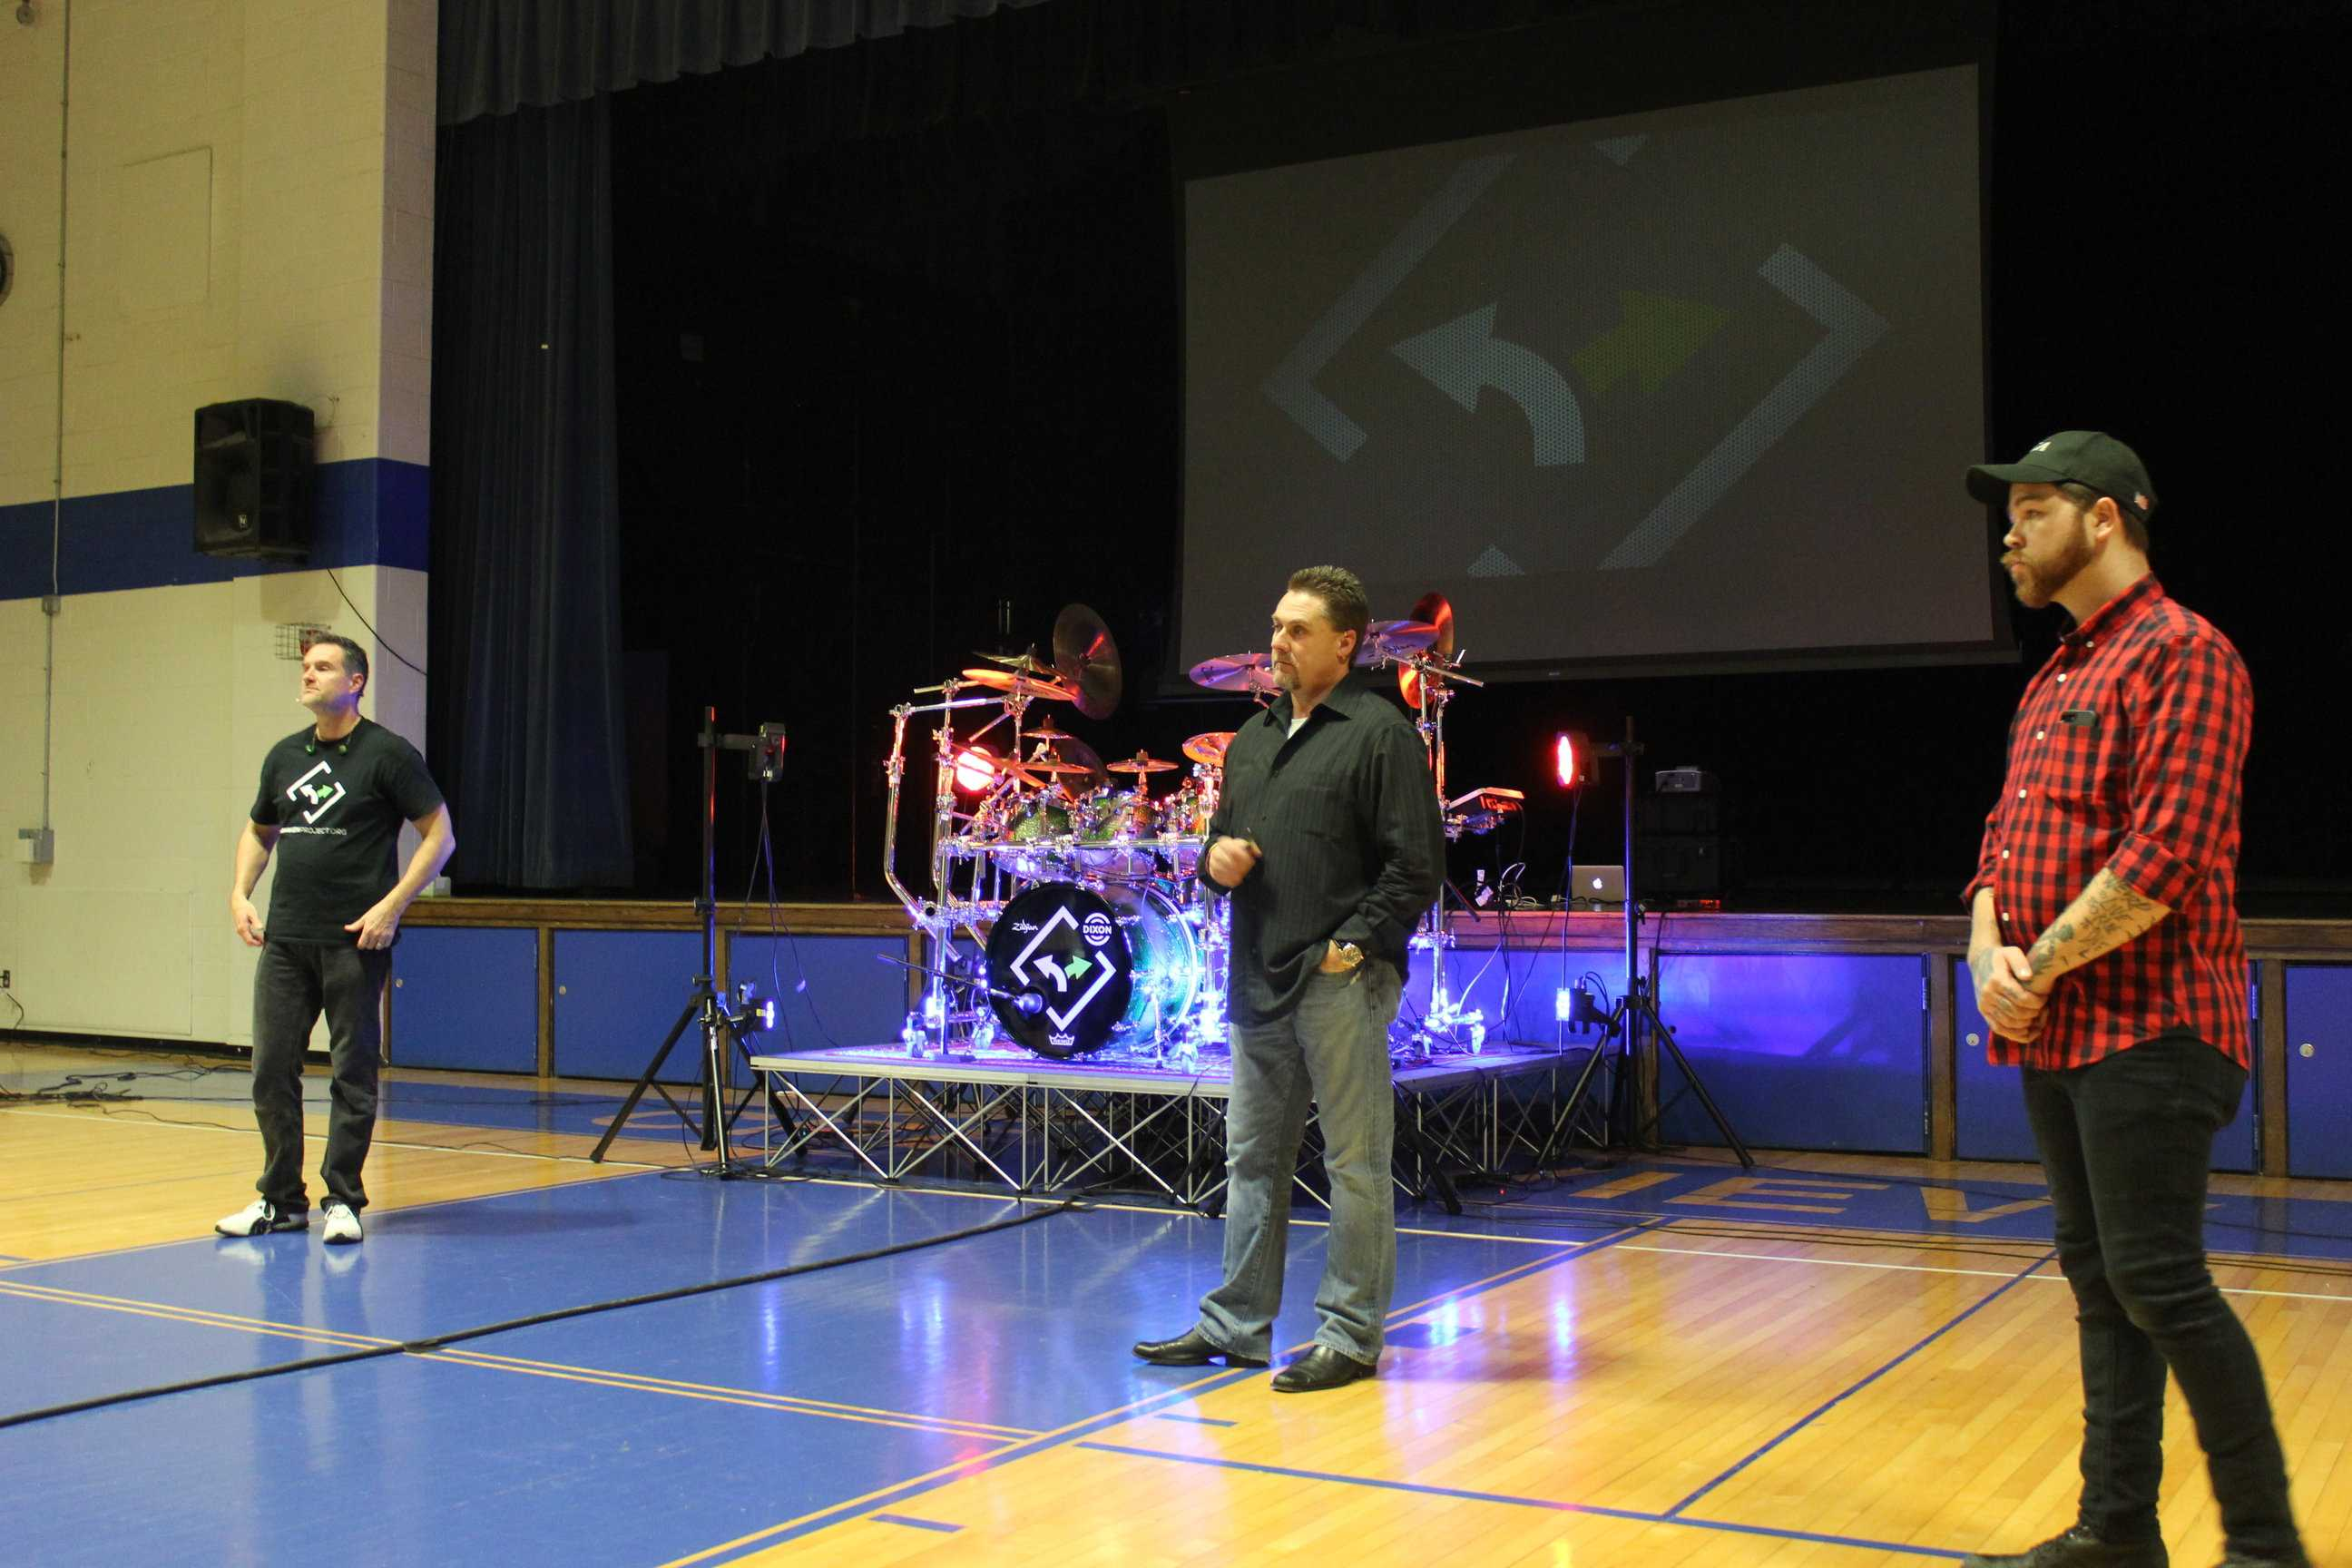 Jeff Mozingo (far left) and Joe Richardson (middle), answer questions from a concerned crowd, regarding their presentation on the dangers of heroin, held at the Crestview Middle School on the 11th of January.